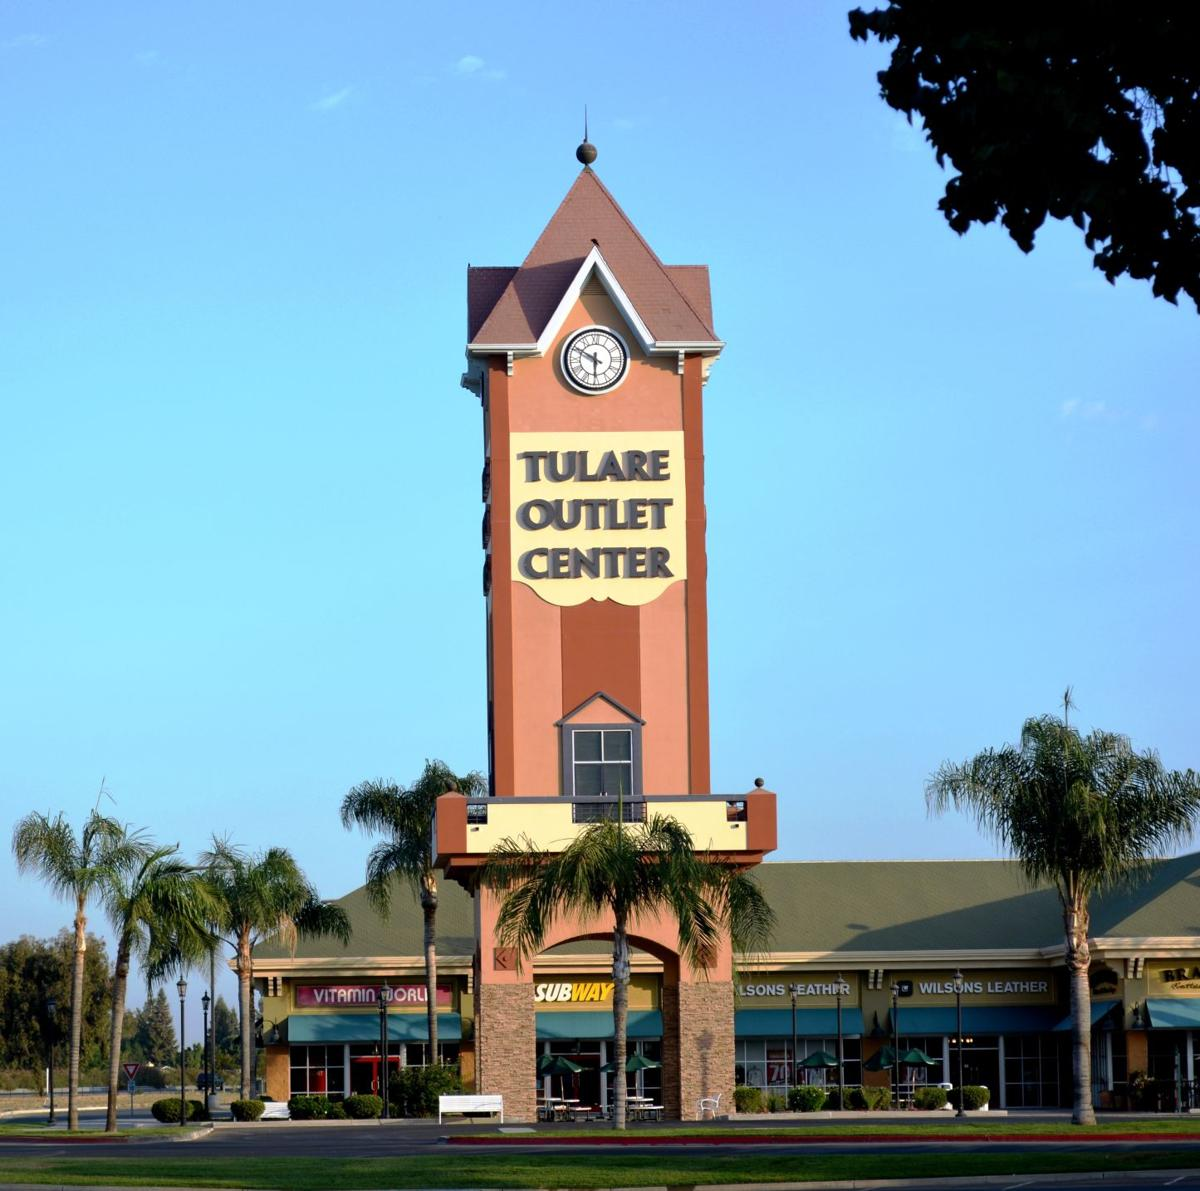 Tulare Outlet Center 2